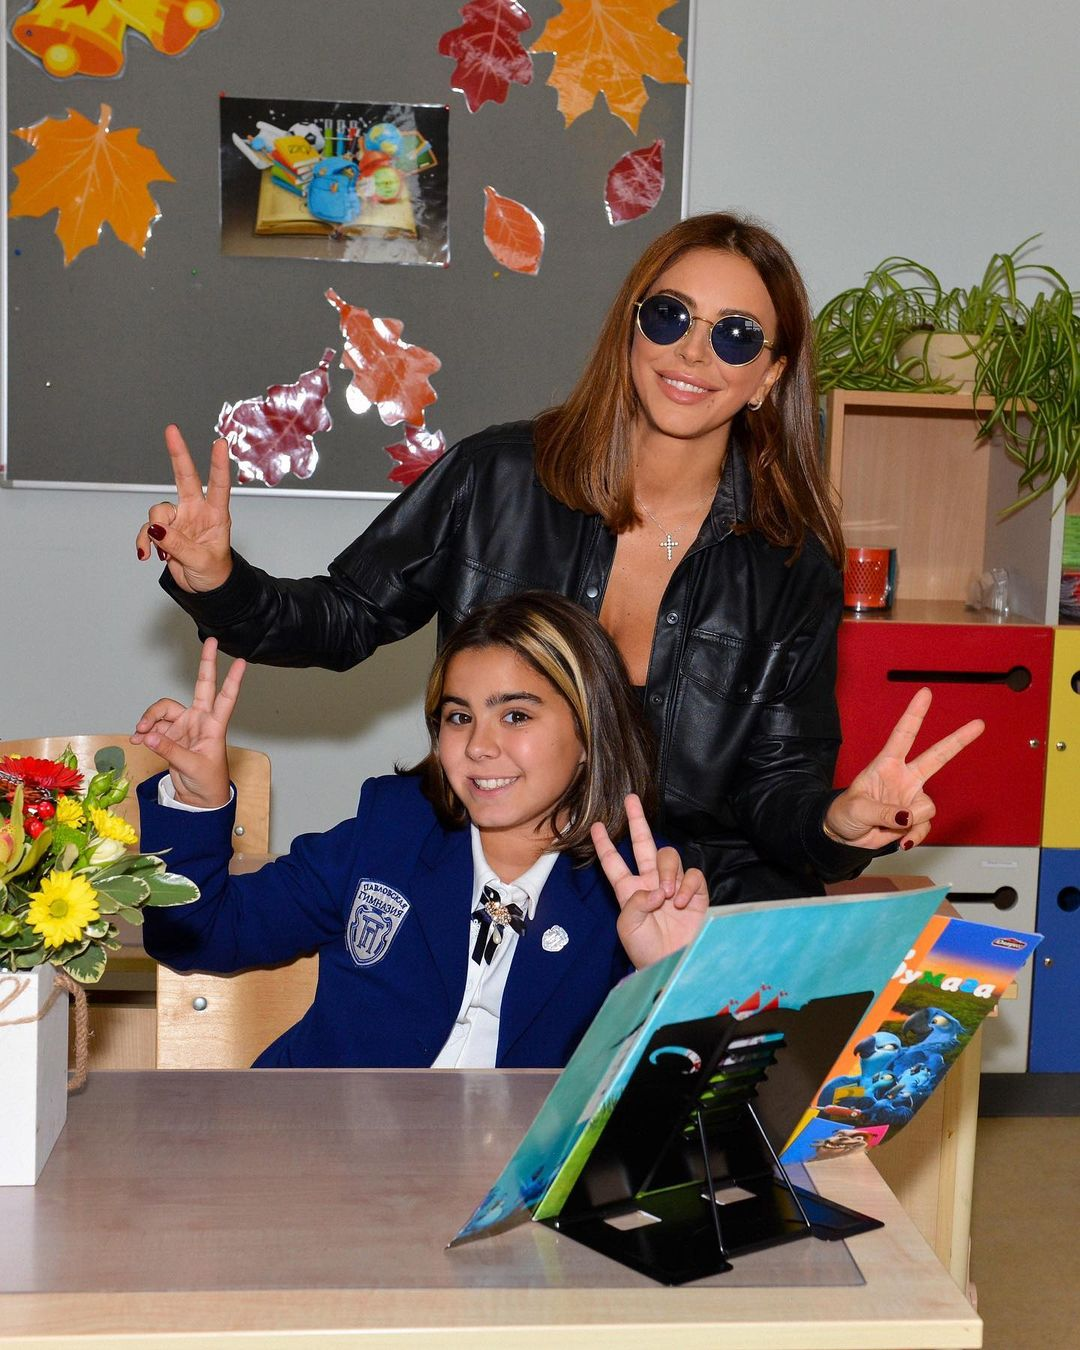 Ani Lorak did not take off her sunglasses indoors, taking a photo with her grown-up daughter